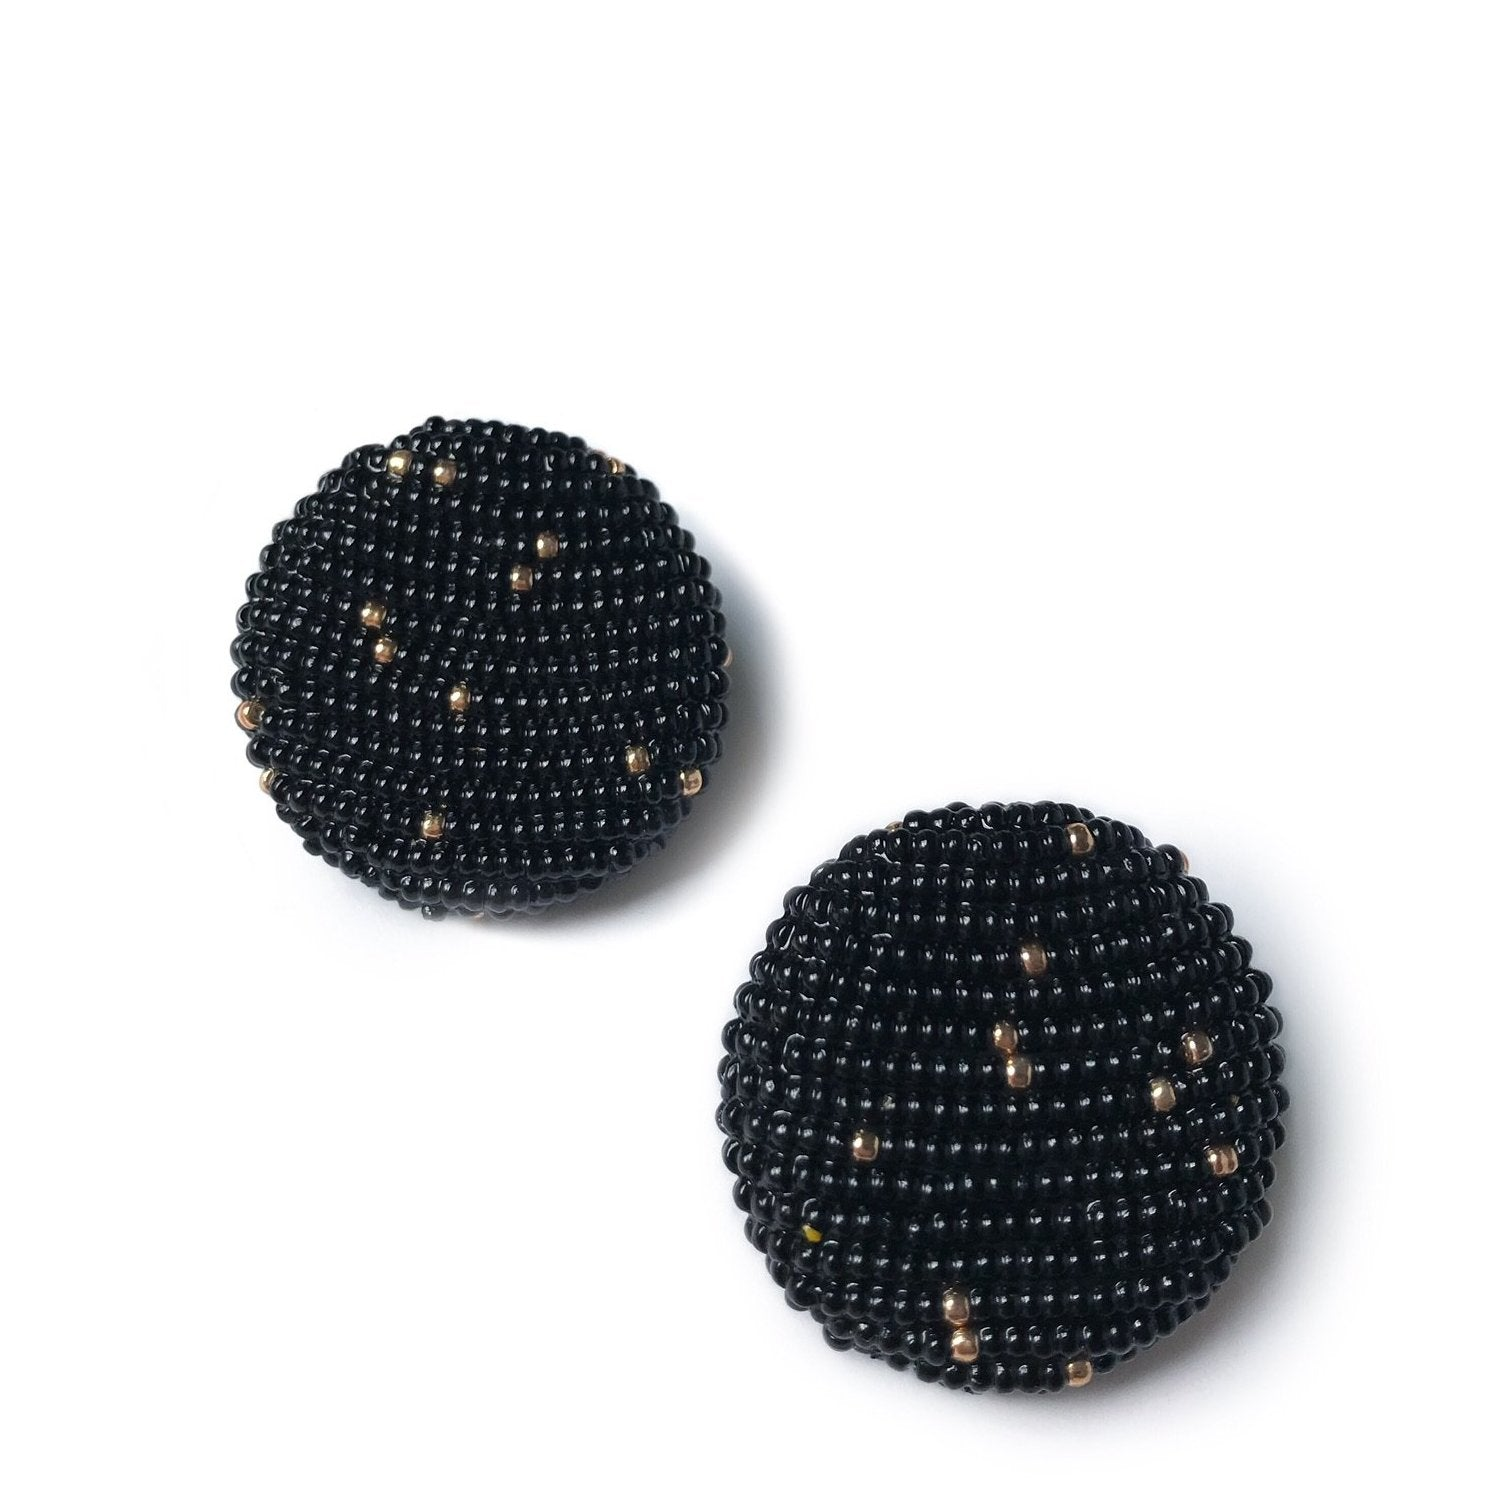 POLKAMOR EARRINGS Black